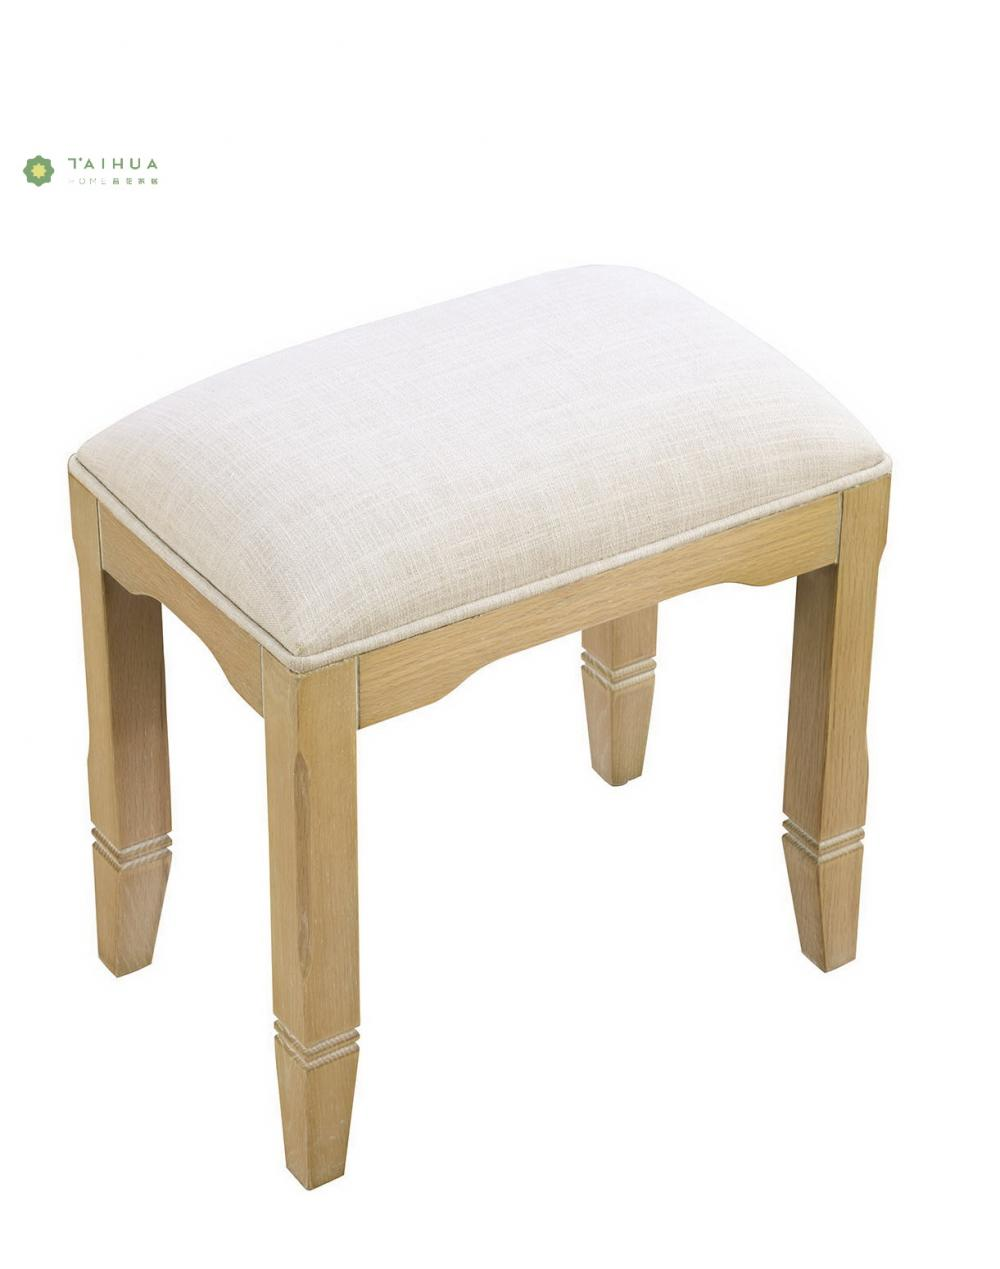 Solid Wood Dresser Stool Fabric Cushion